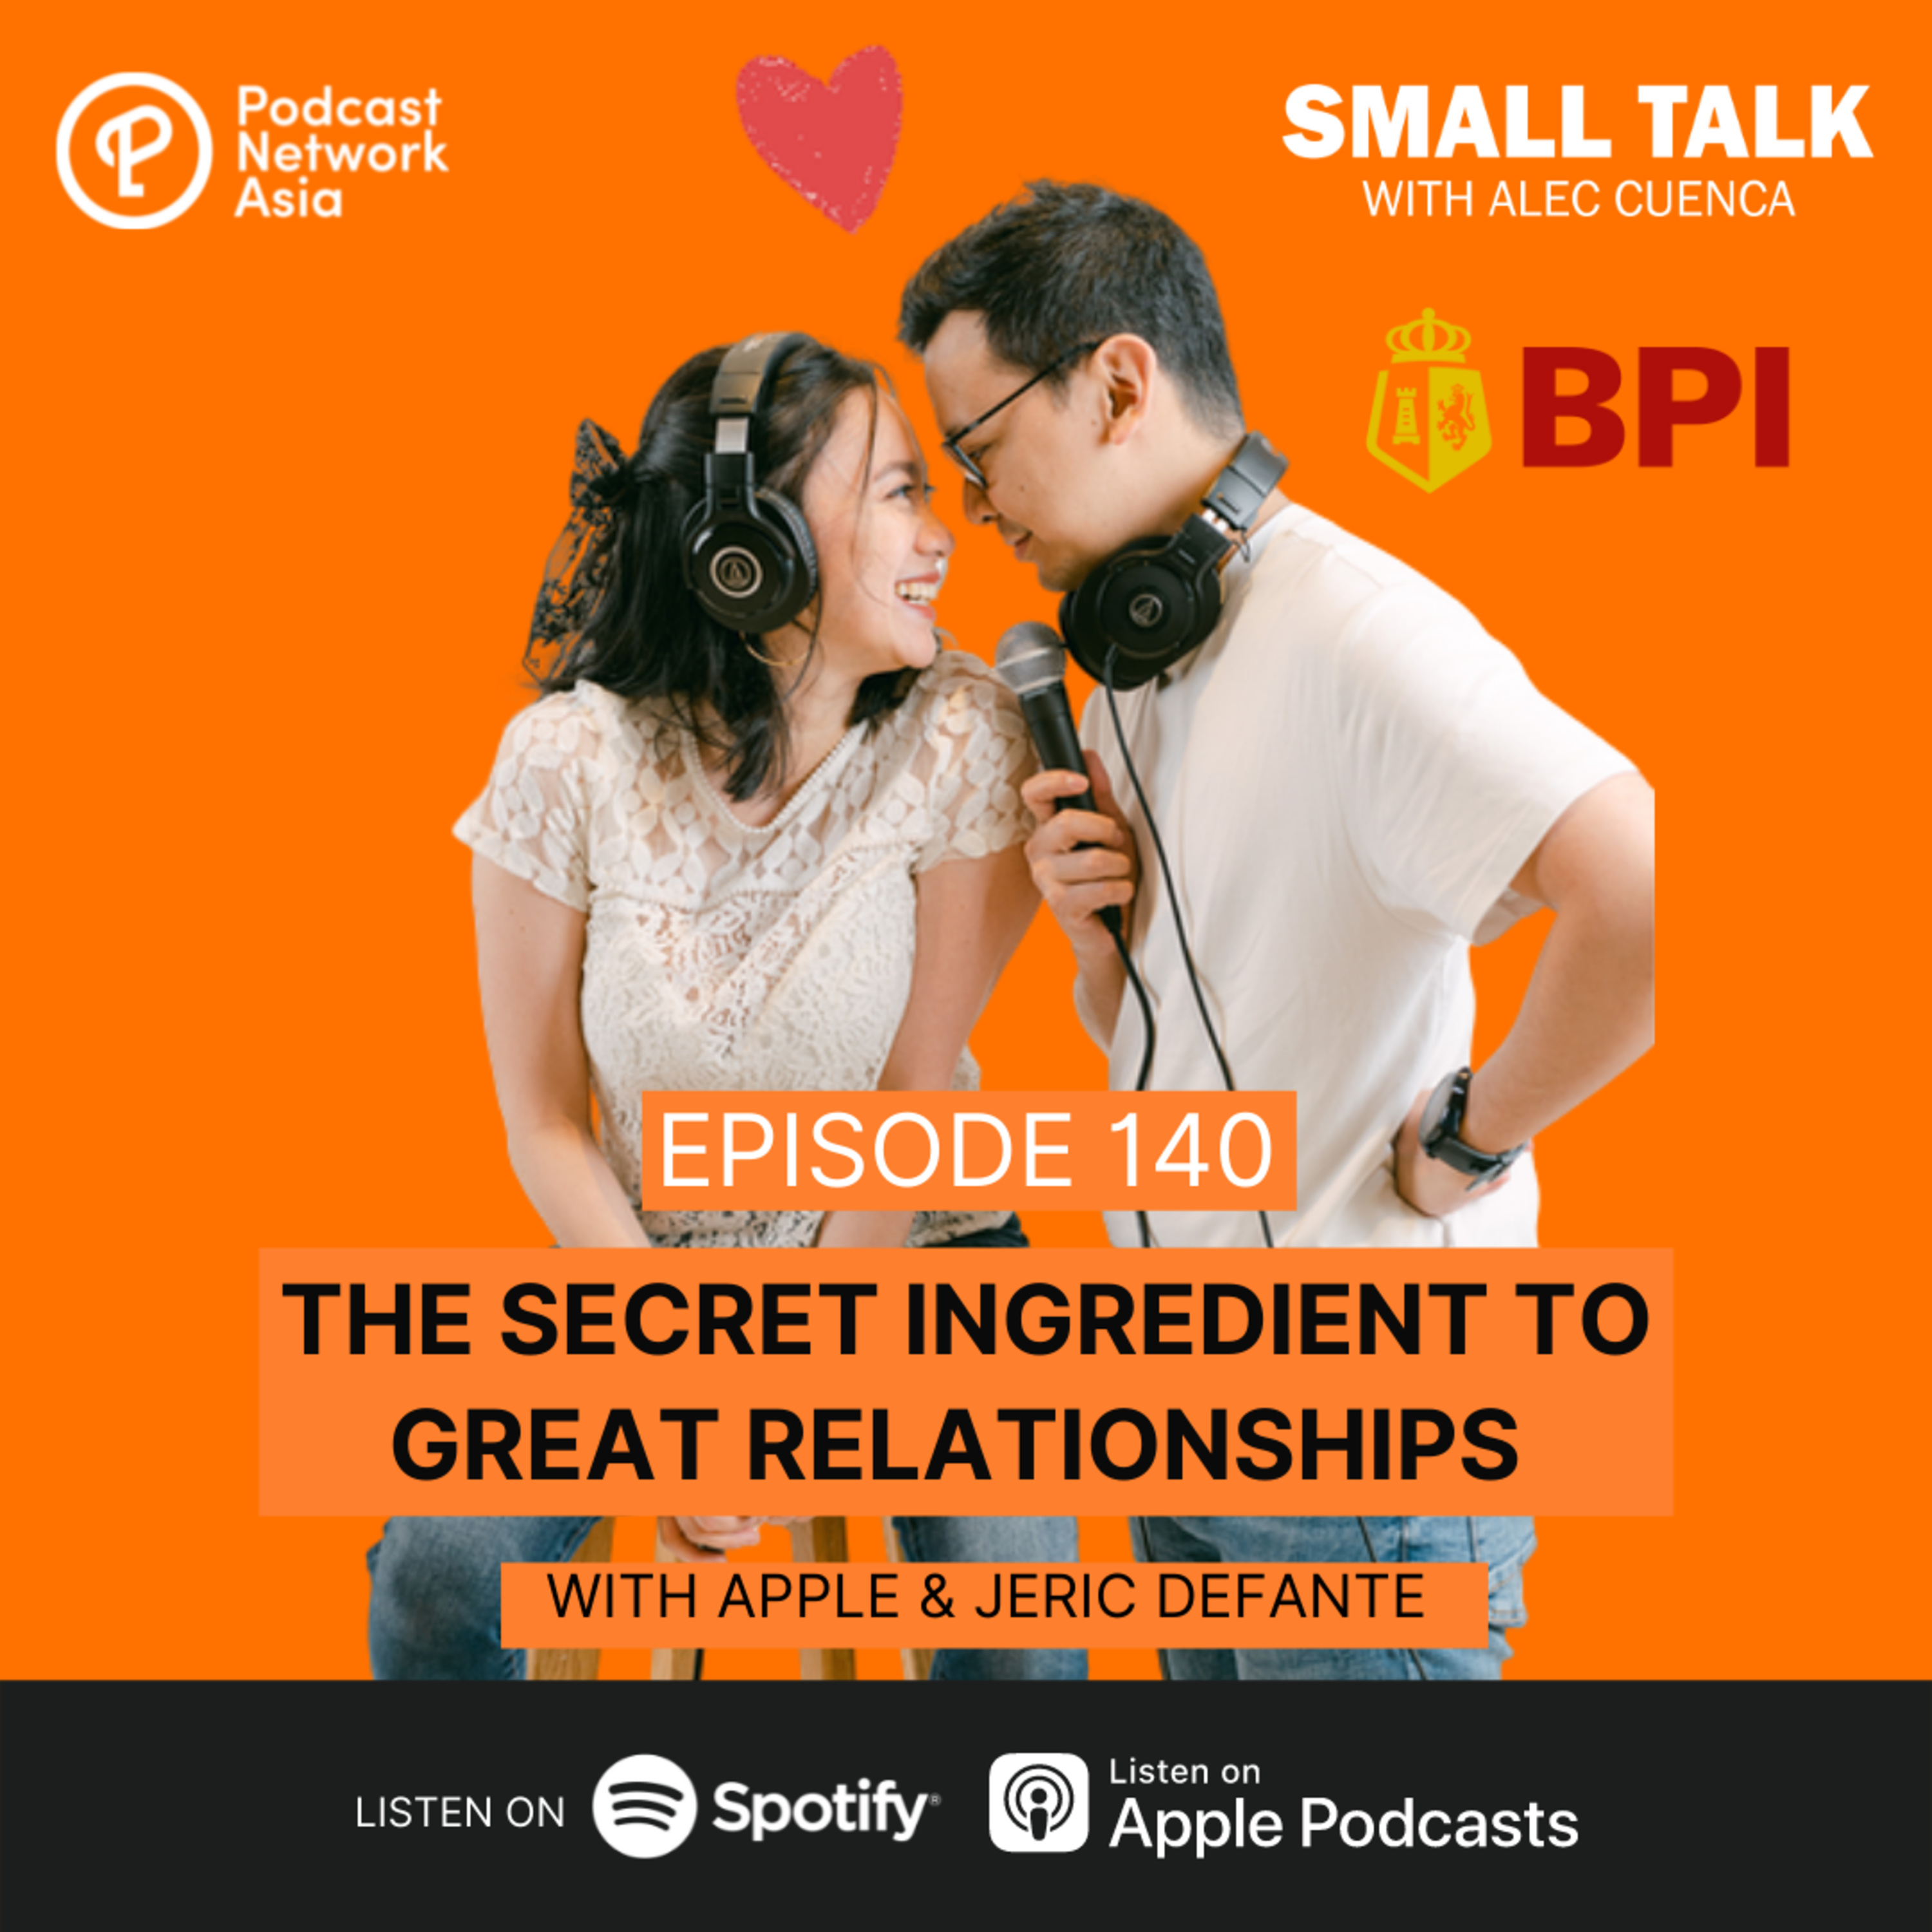 The Secret Ingredient To Great Relationships With Apple & Jeric Defante